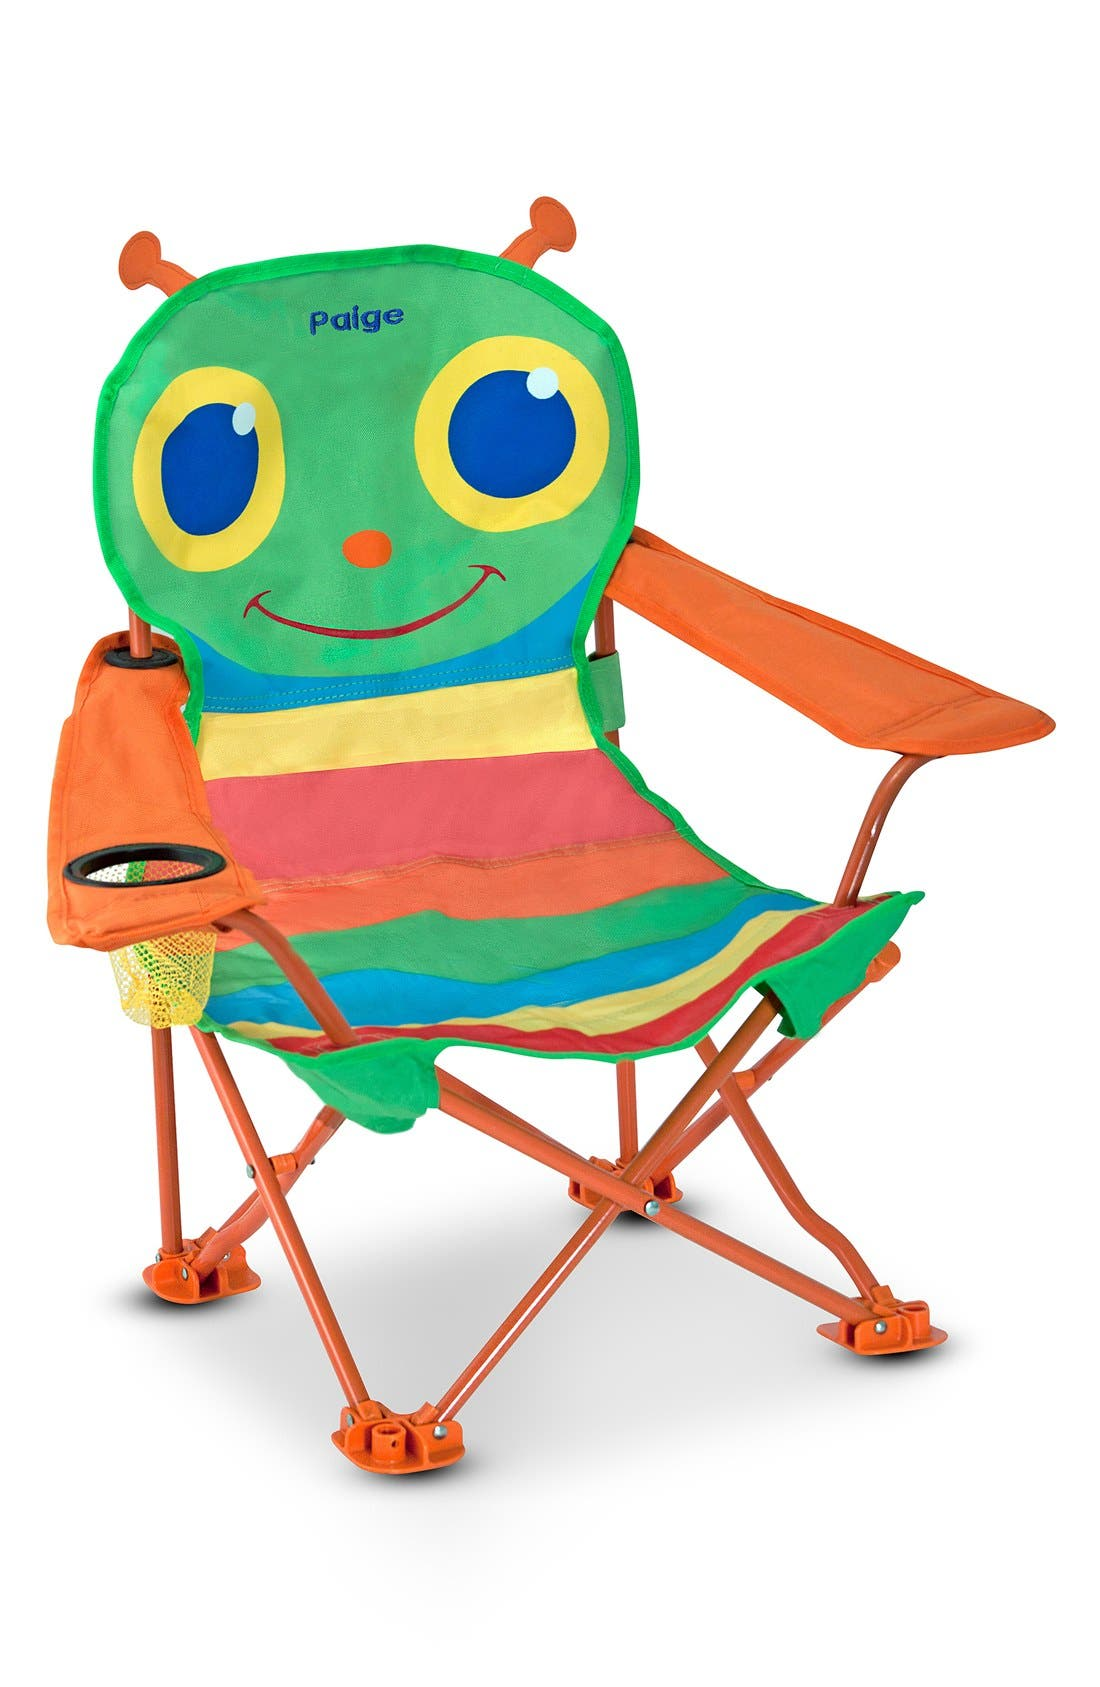 'Happy Giddy' Personalized Folding Chair,                             Main thumbnail 1, color,                             GREEN